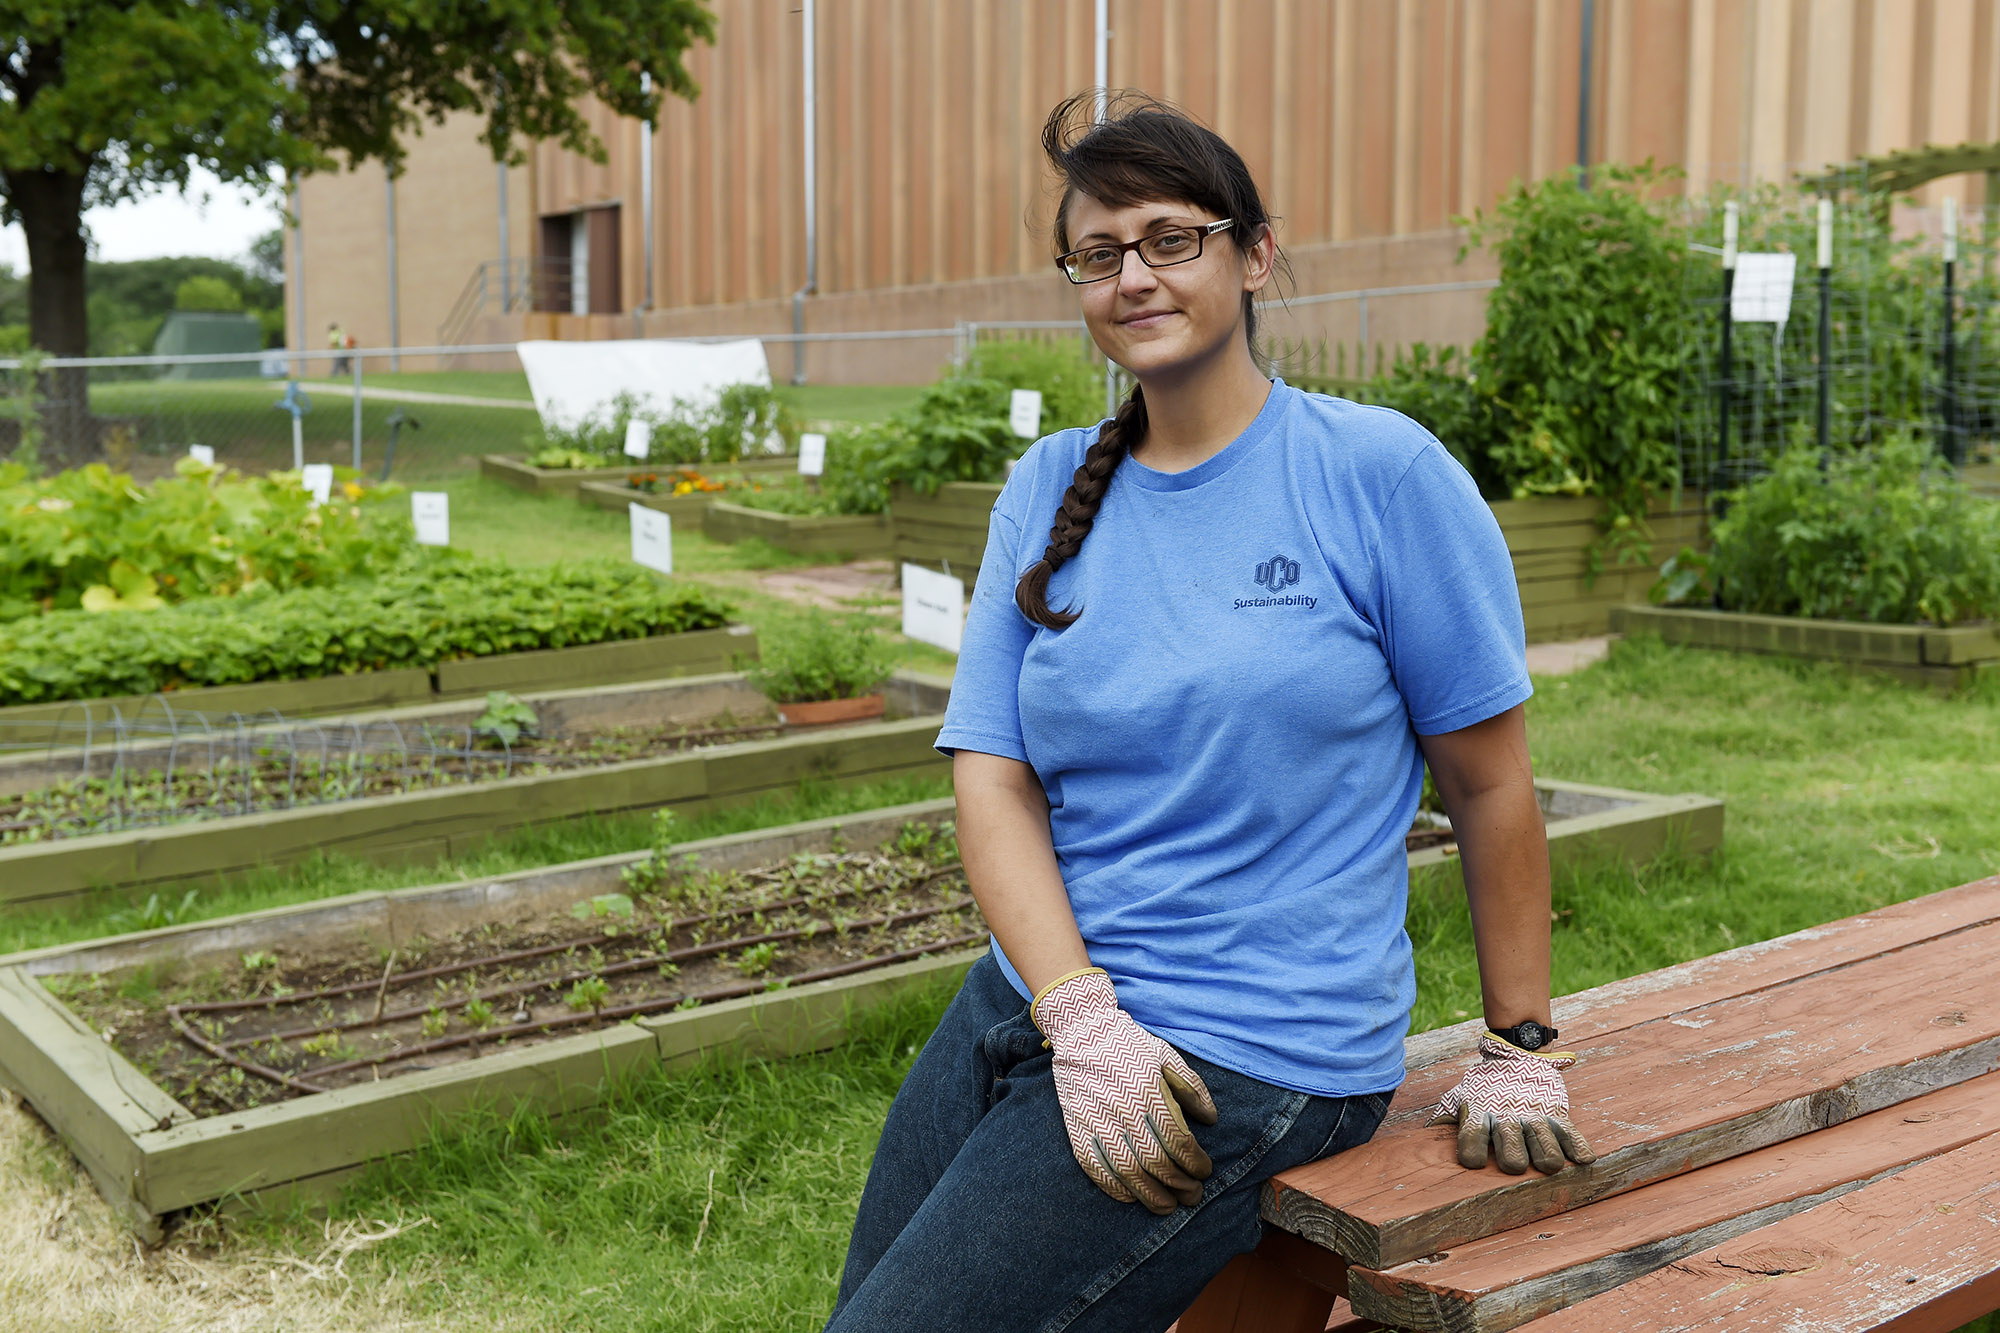 Jennifer Swann, UCO graduate student and summer intern for the university's Volunteer and Service Learning Center, oversees the center's community garden.